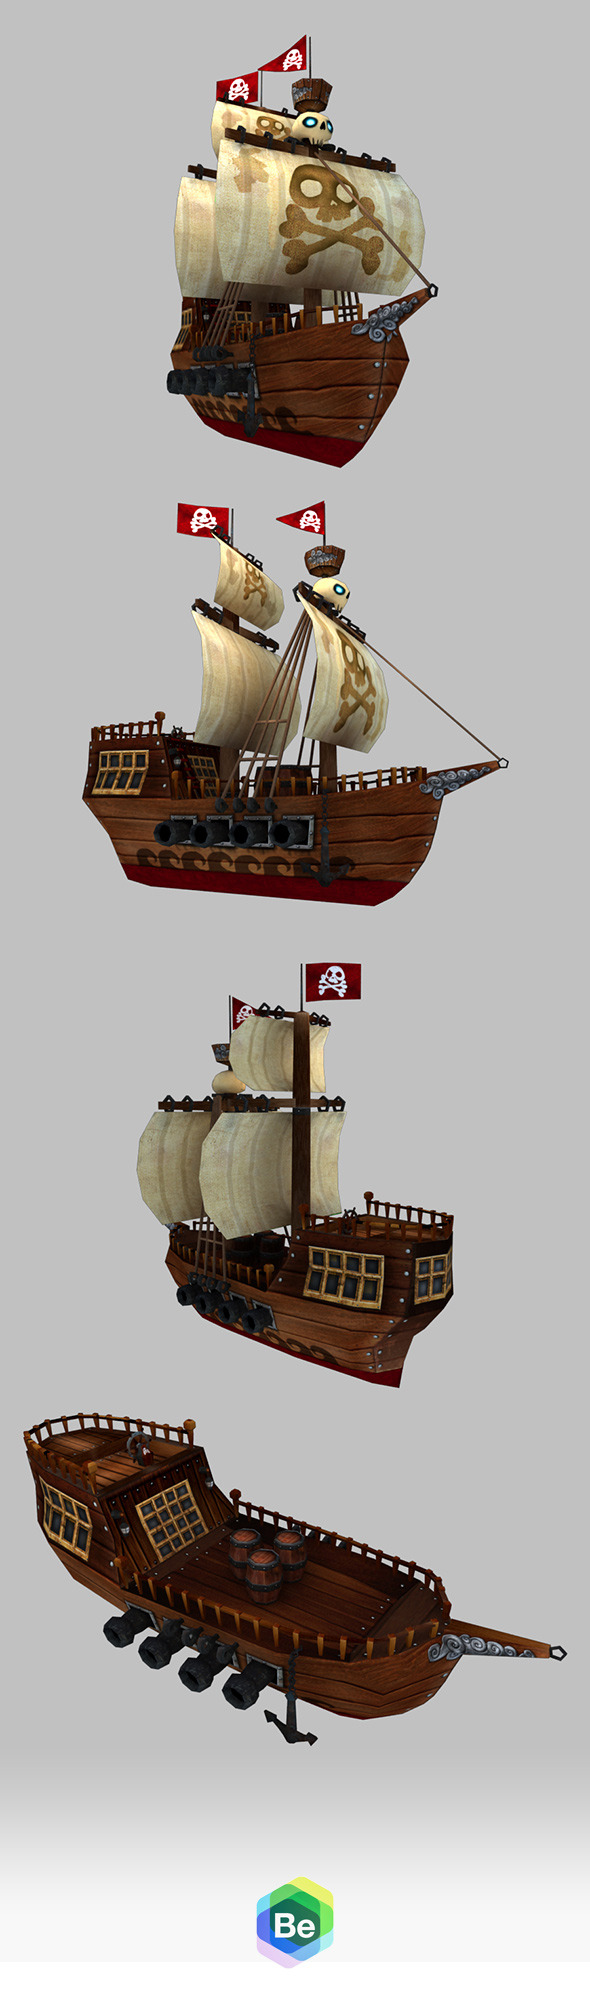 3DOcean Low Poly Cartoonish Pirate Ship 5886141